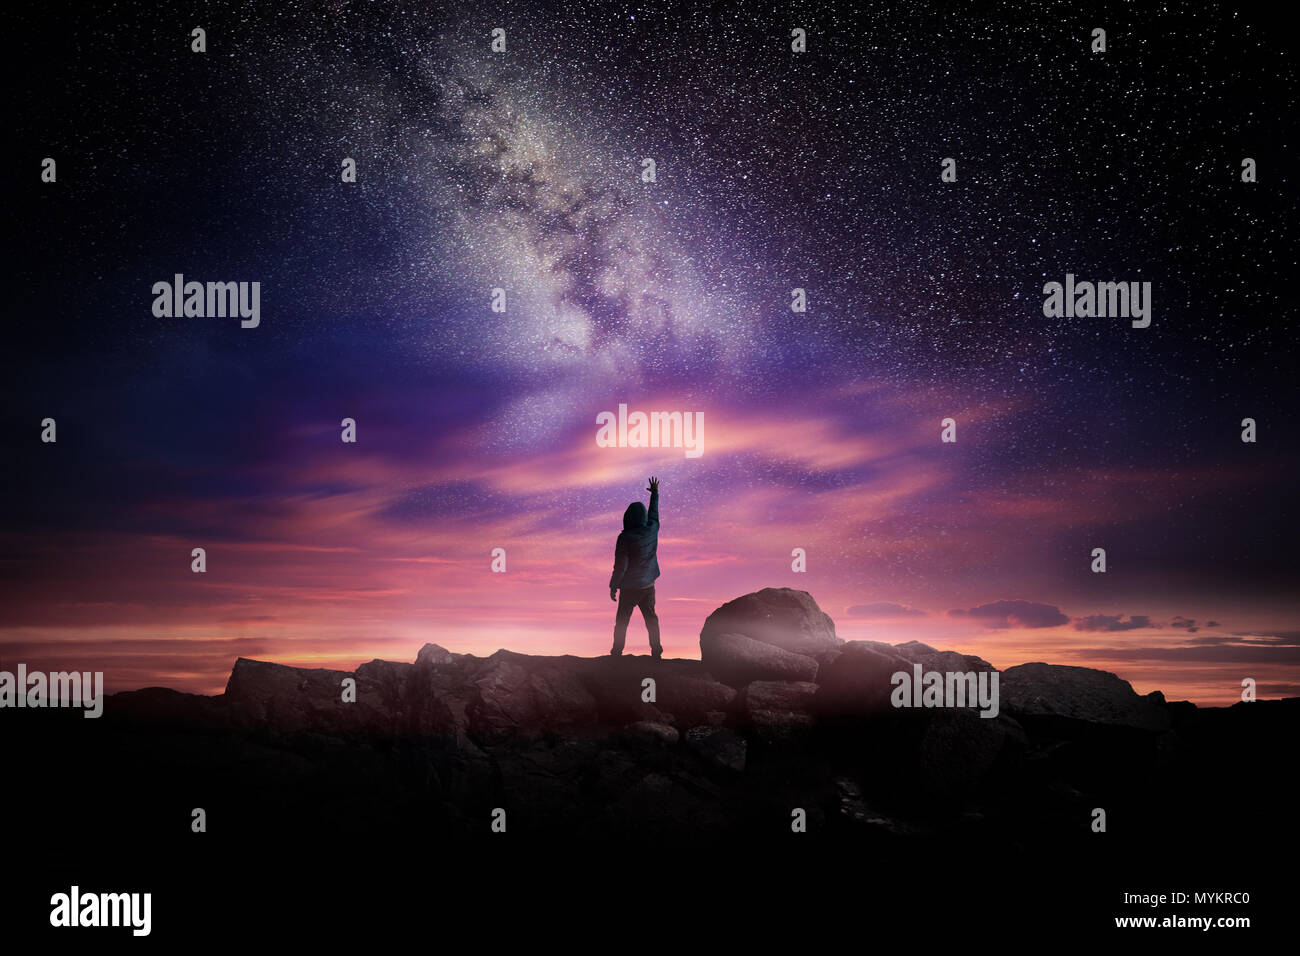 Night time long exposure landscape photography. A man standing in a high place reaching up in wonder to the Milky Way galaxy, photo composite. - Stock Image